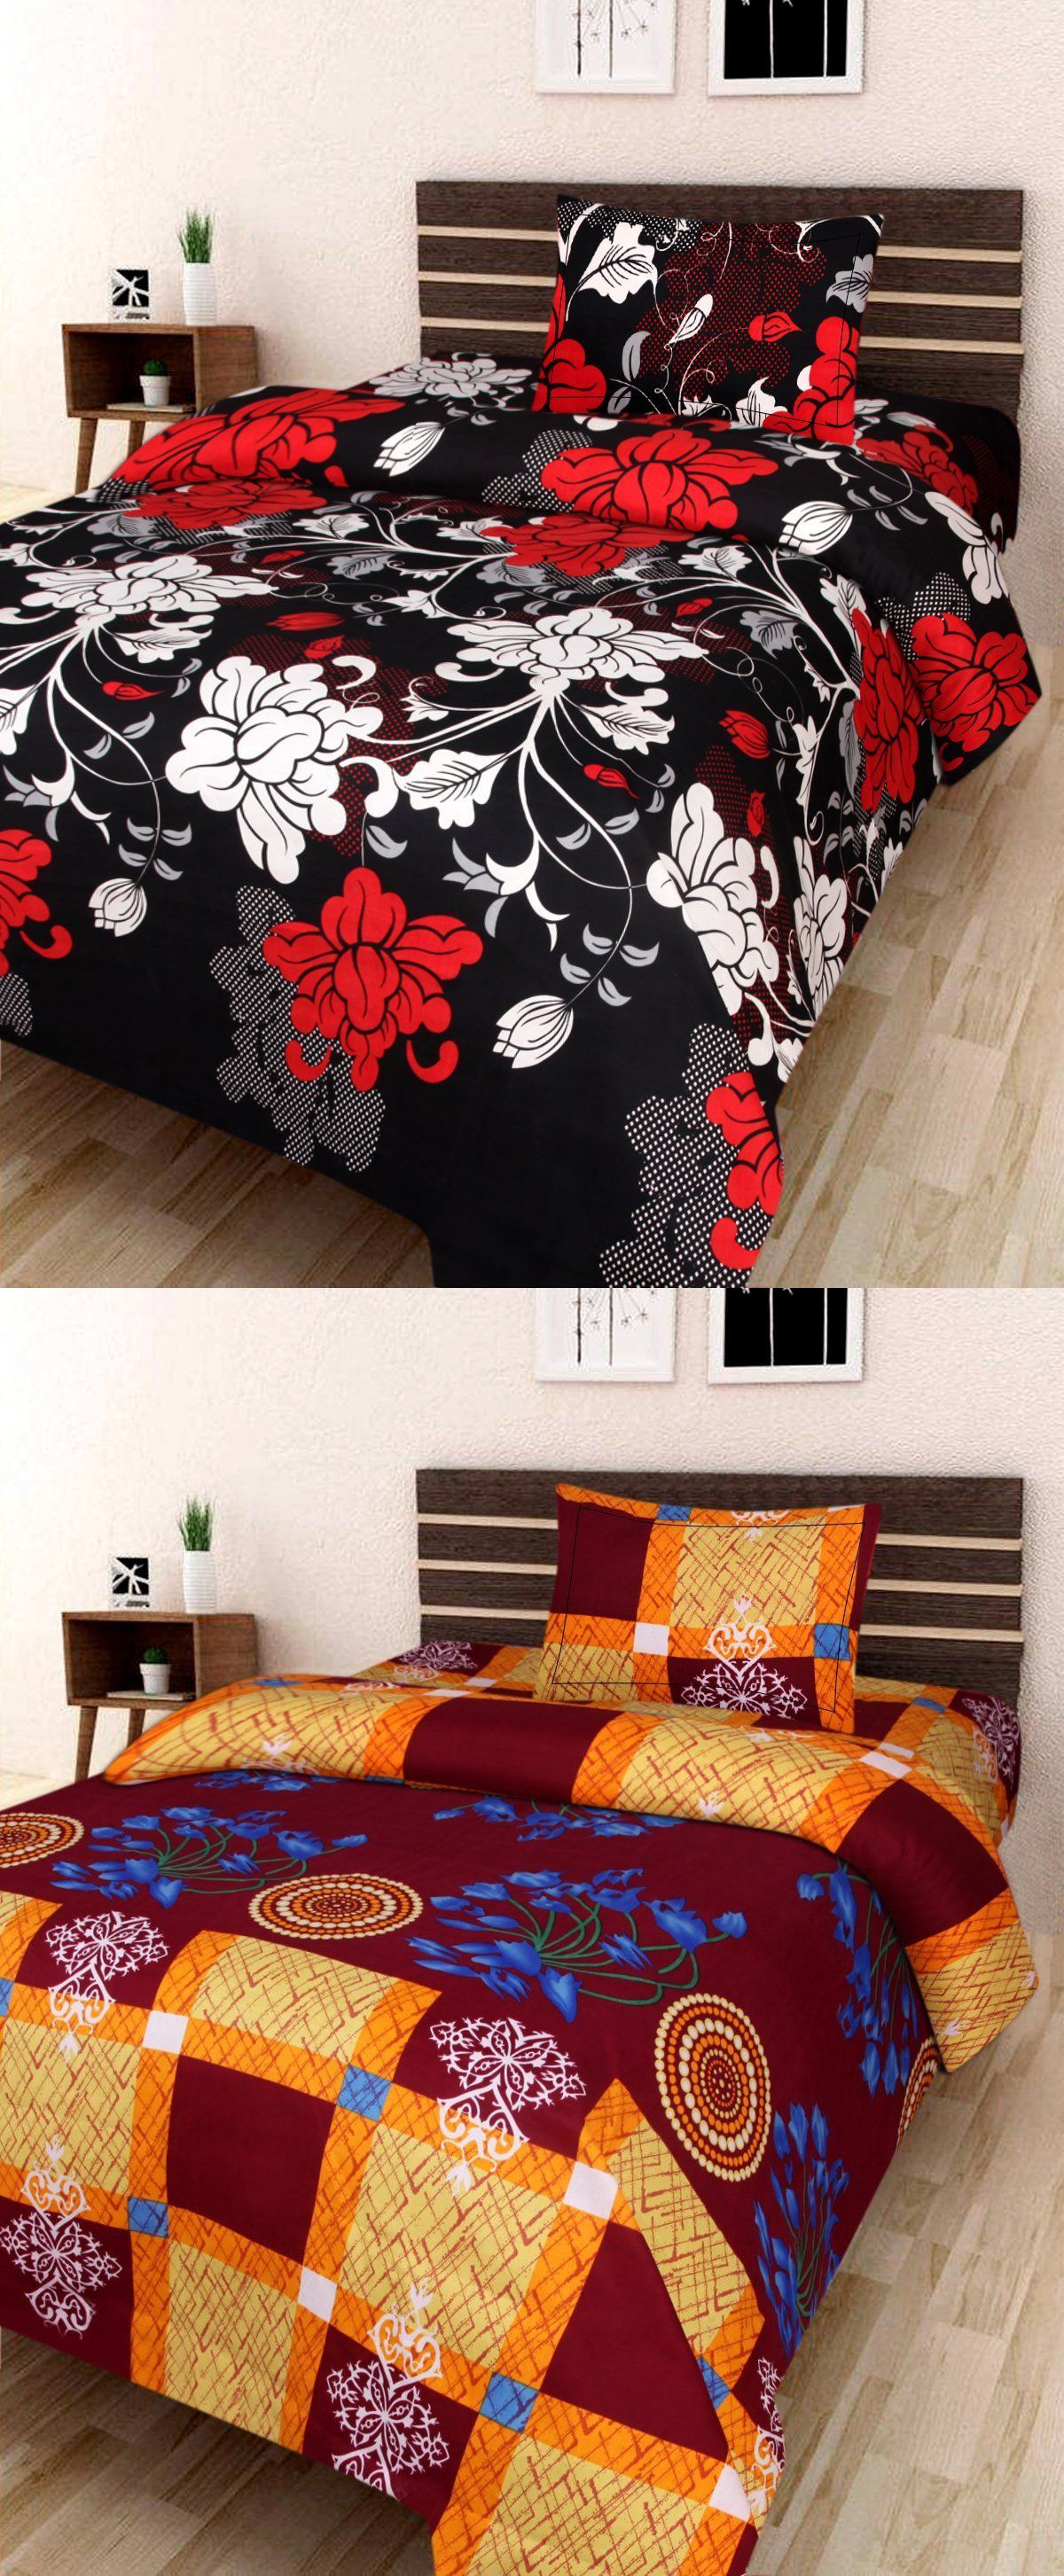 Veer Fab Poly Cotton 2 Single Bedsheets with 2 Pillow Covers